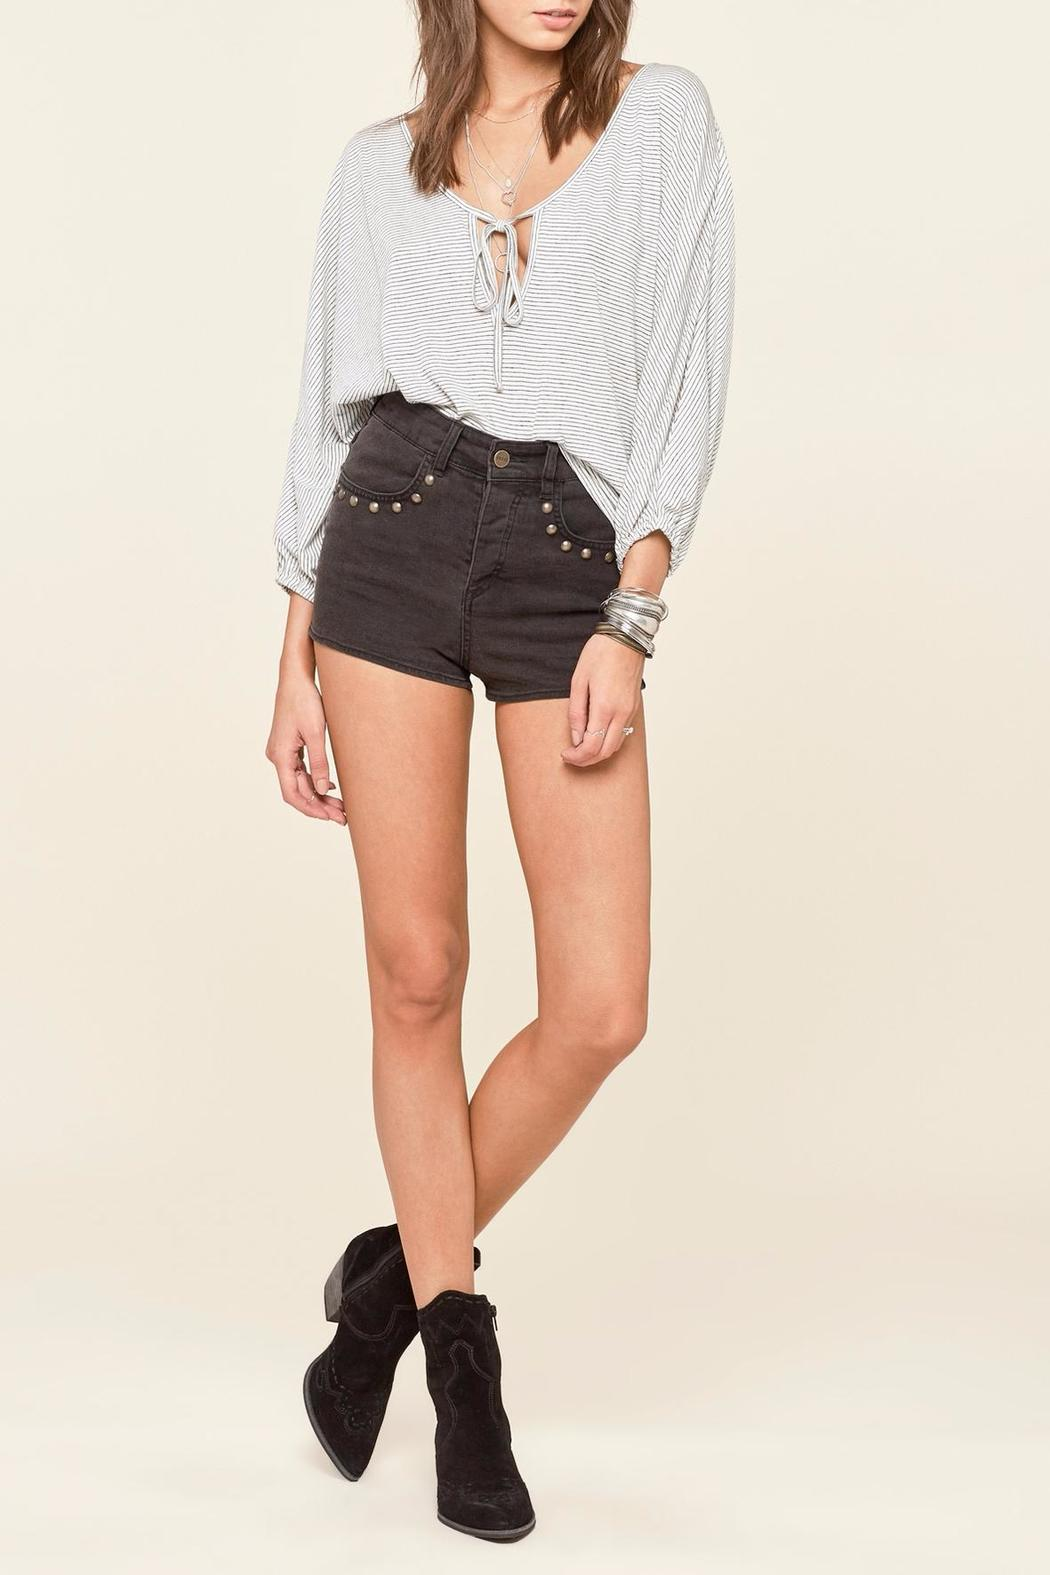 AMUSE SOCIETY Bedford Knit Top - Side Cropped Image